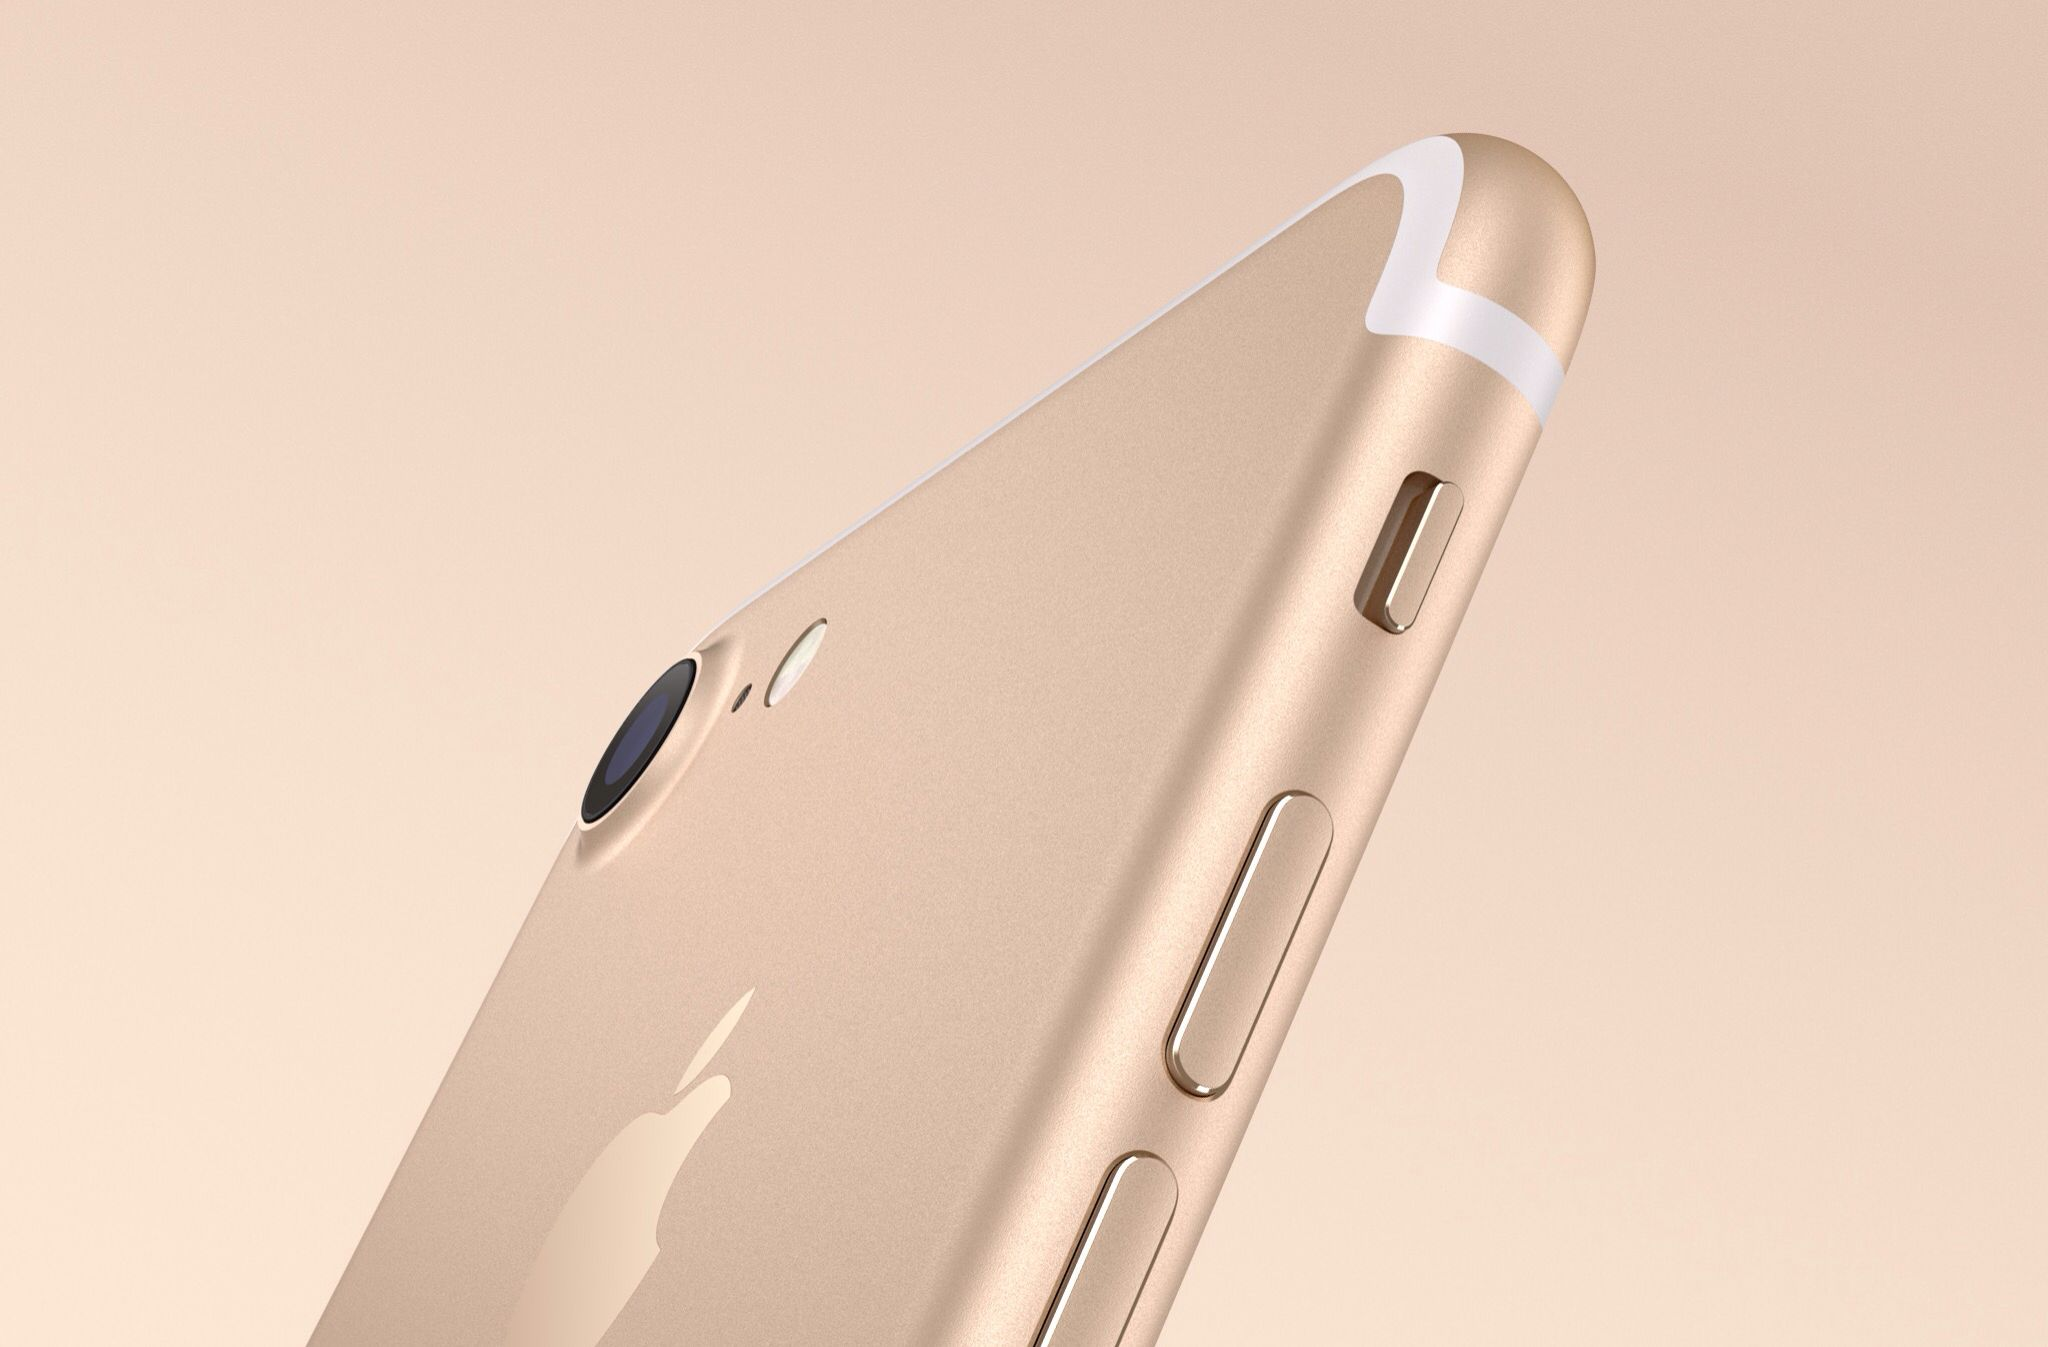 That is the gold color of the new iPhone 7 and 7 Plus